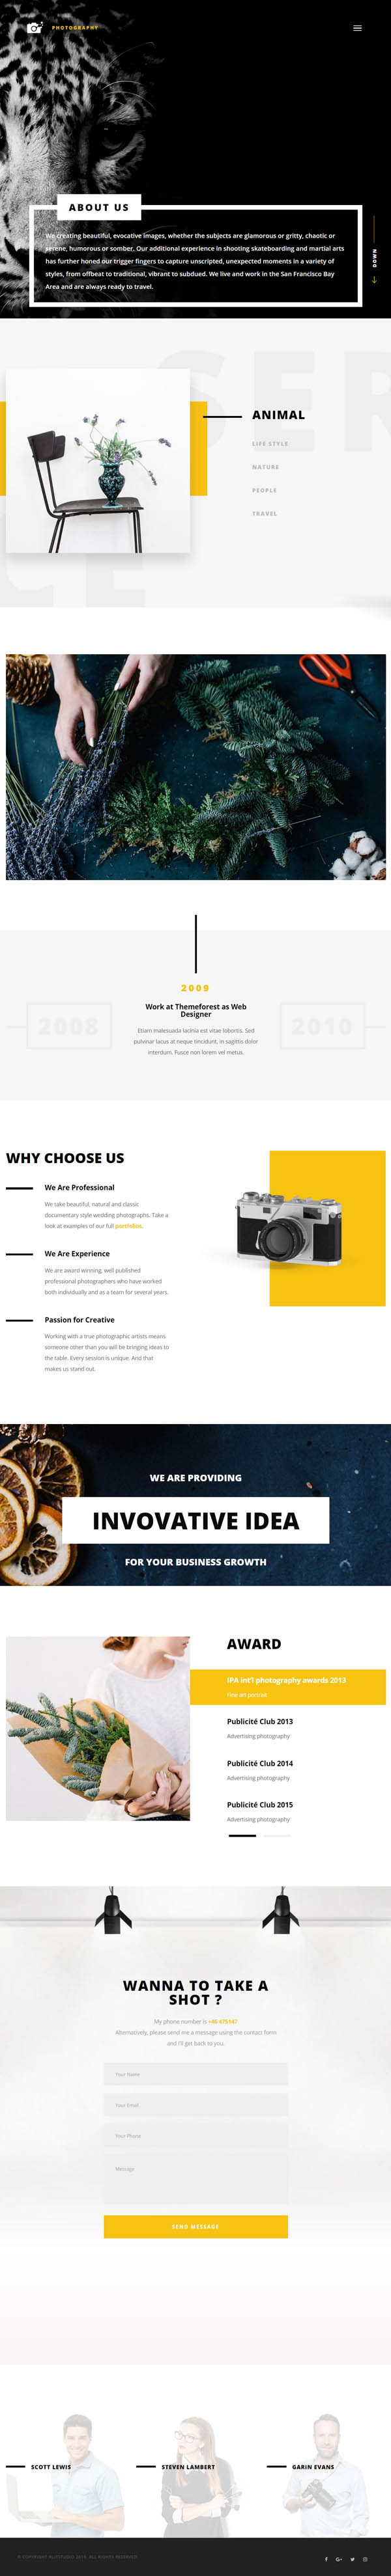 Cephenus - Photography, Portfolio & Gallery WordPress Theme